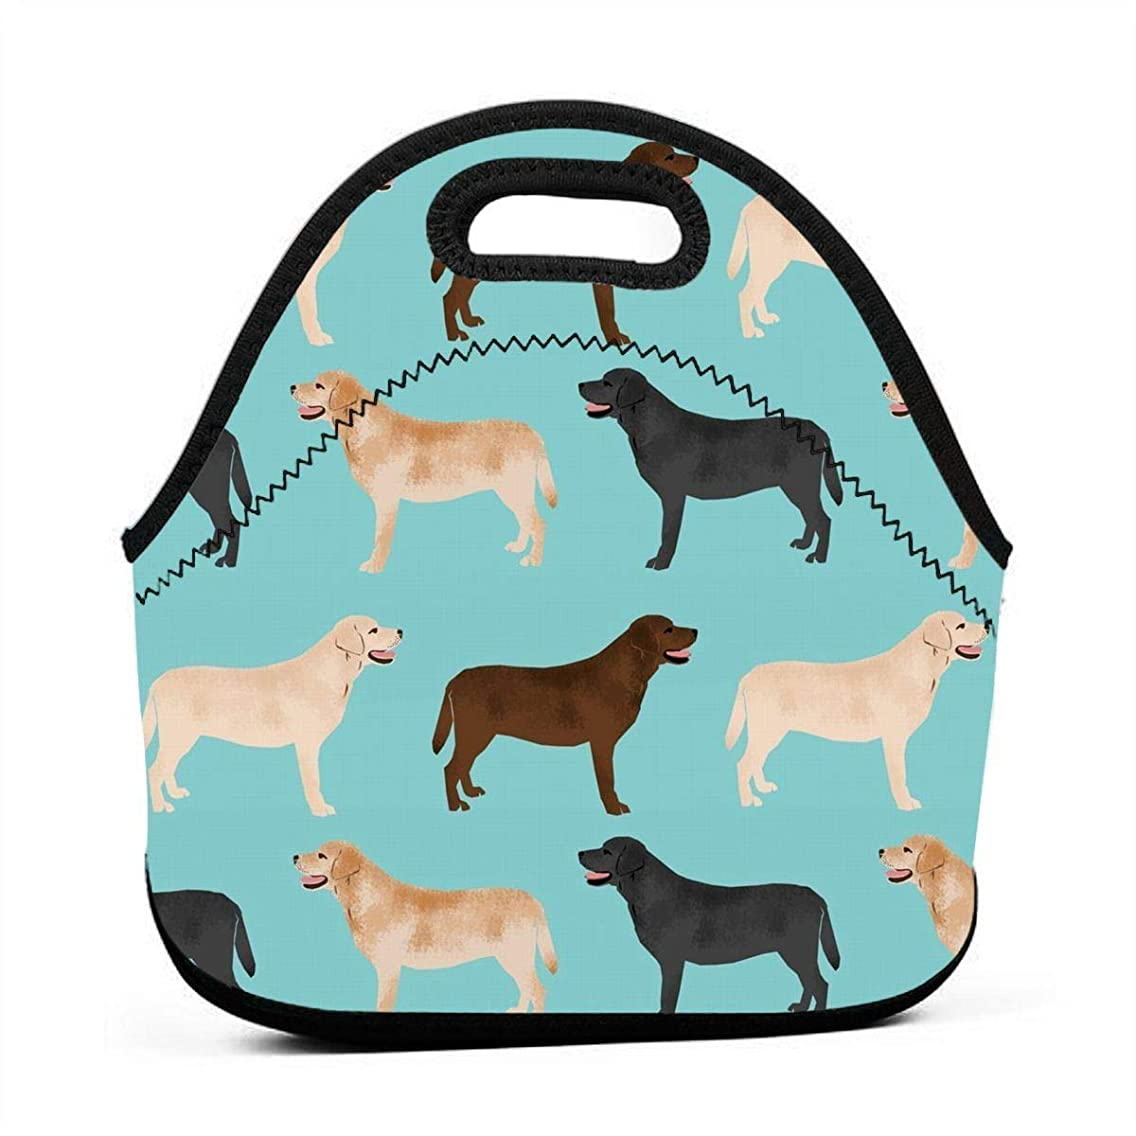 Lunch Bag Cute Labradors Yellow Chocolate Black Lab Pet Dogs Insulated Reusable Lunch Box Portable Lunch Tote Bag Meal Bag Ice Pack for Kids Boys Girls Adult Men Women